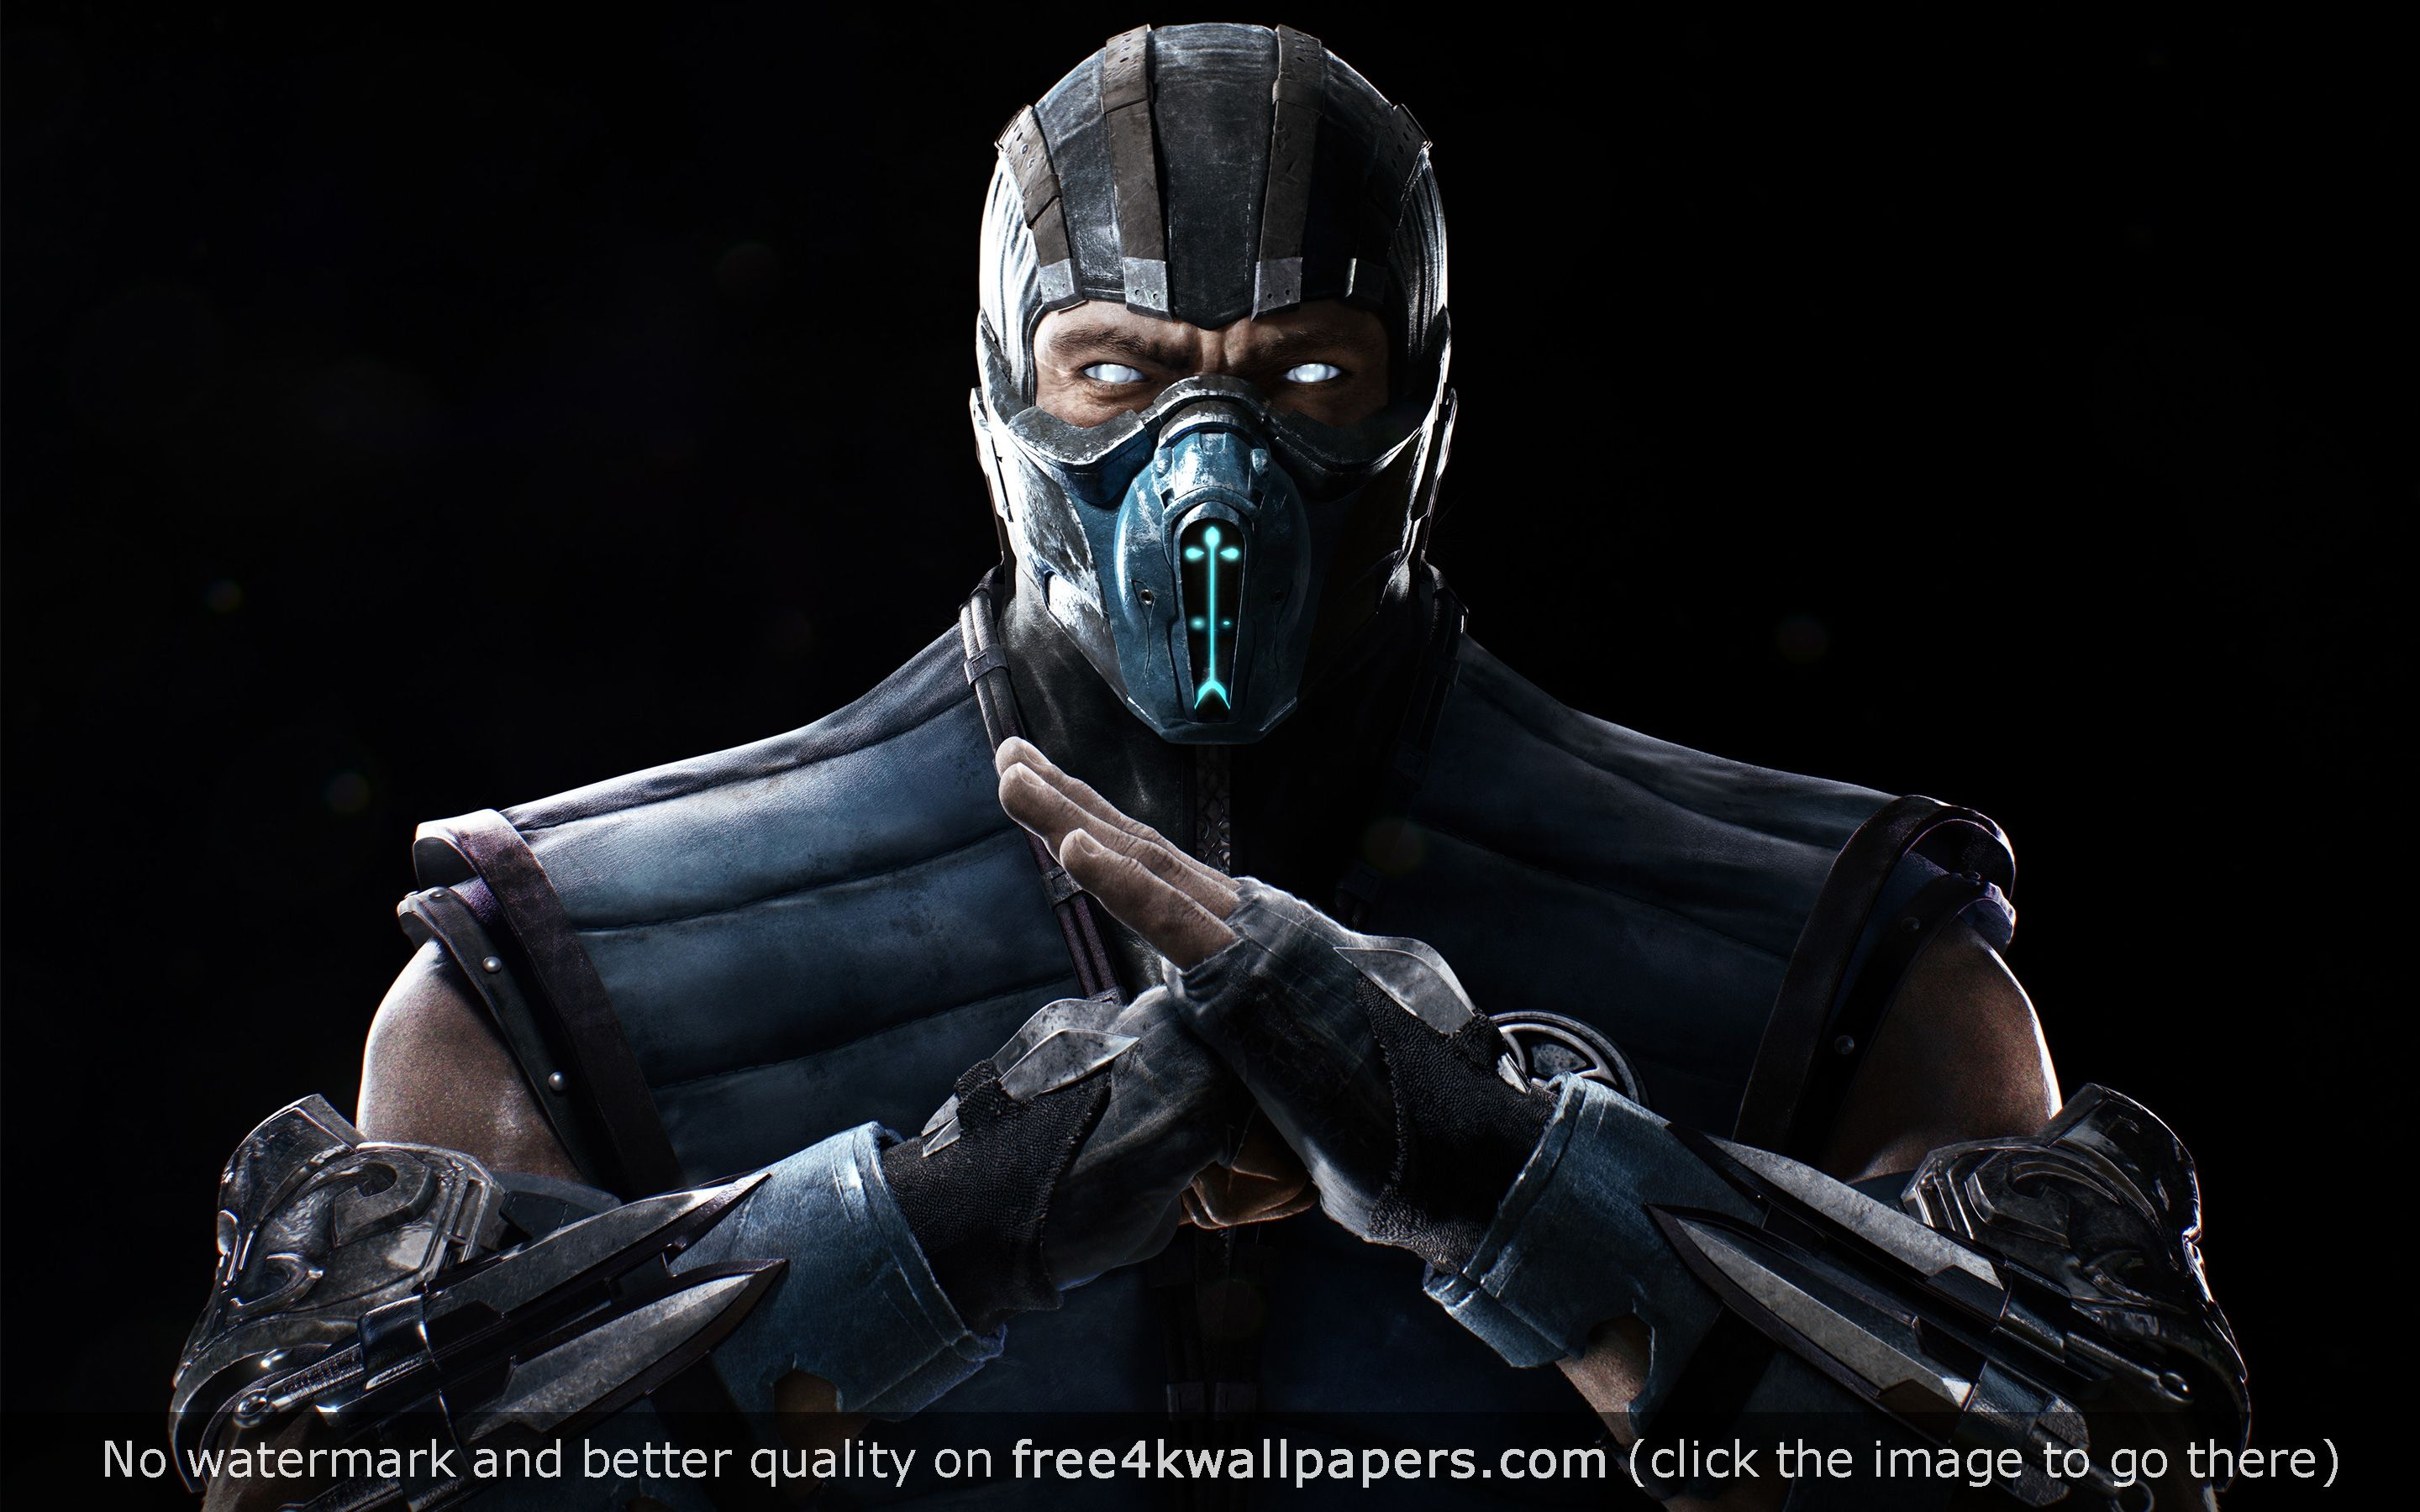 Mortal Kombat X Sub Zero 4k 5k Hd Wallpaper Desktop Wallpapers